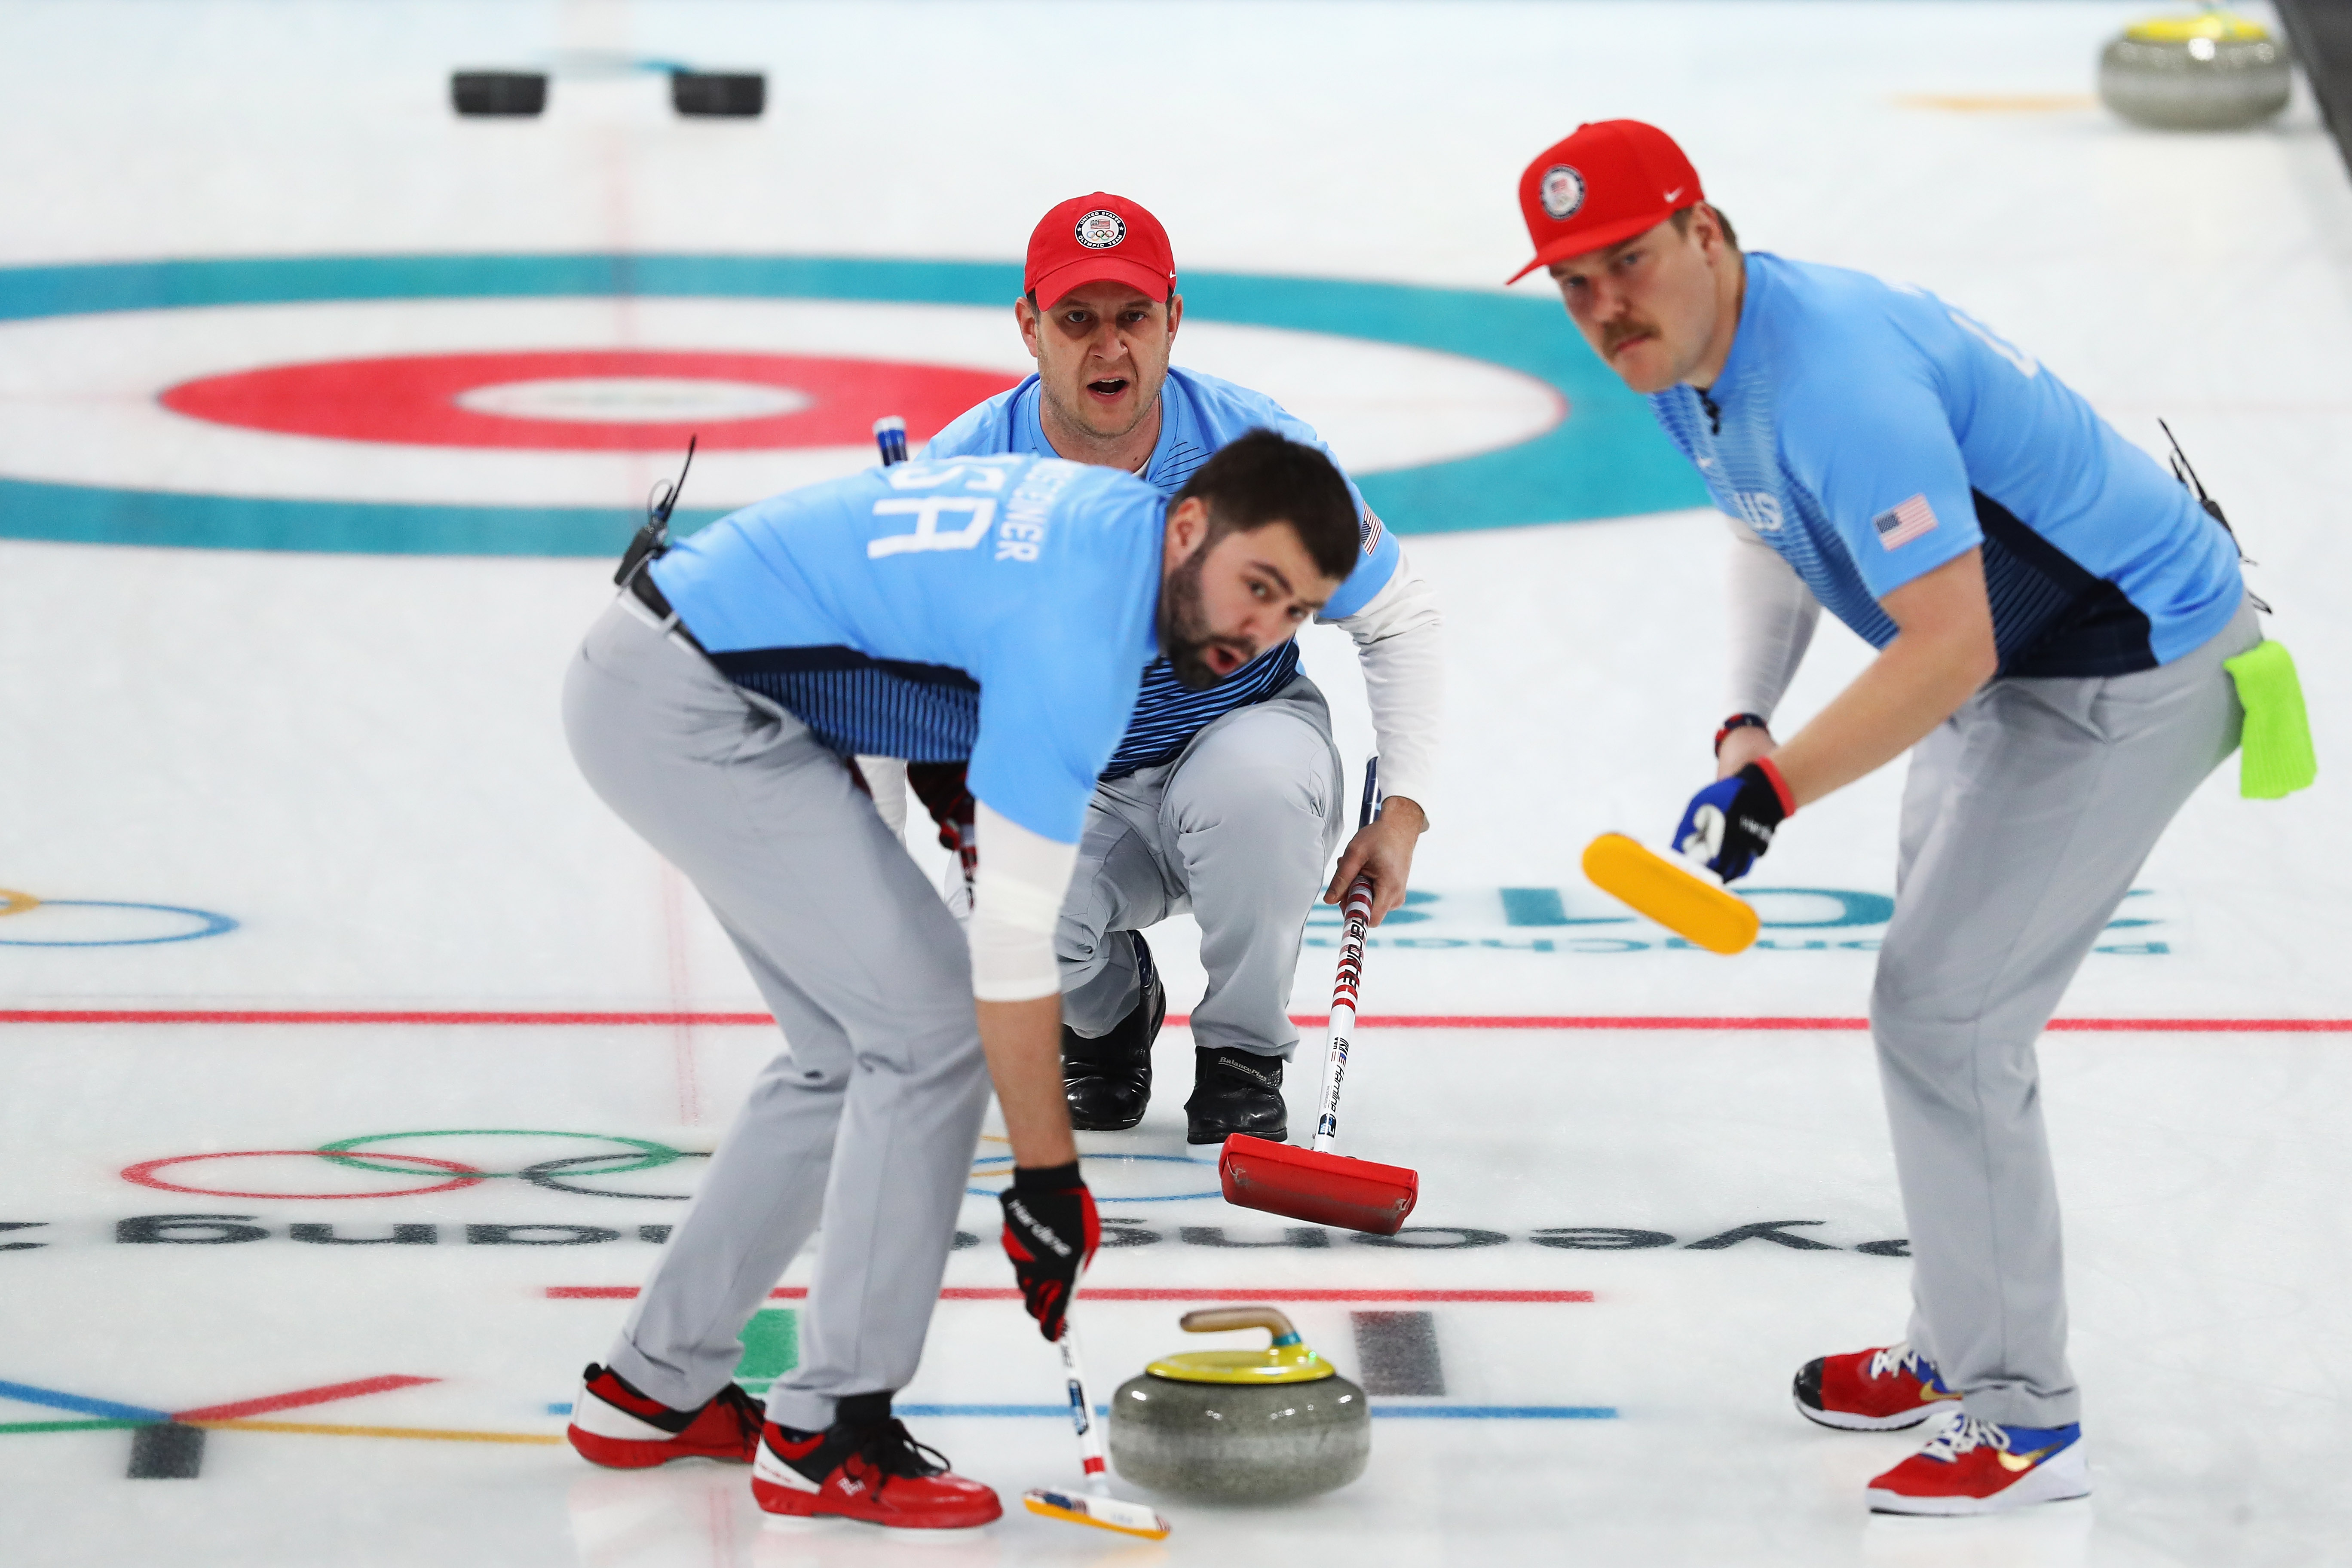 Matt Hamilton, John Shuster, John Landsteiner of USA compete in the Curling Men's Semi-final against Canada on day thirteen of the PyeongChang 2018 Winter Olympic Games at Gangneung Curling Centre on February 22, 2018 in Gangneung, South Korea.